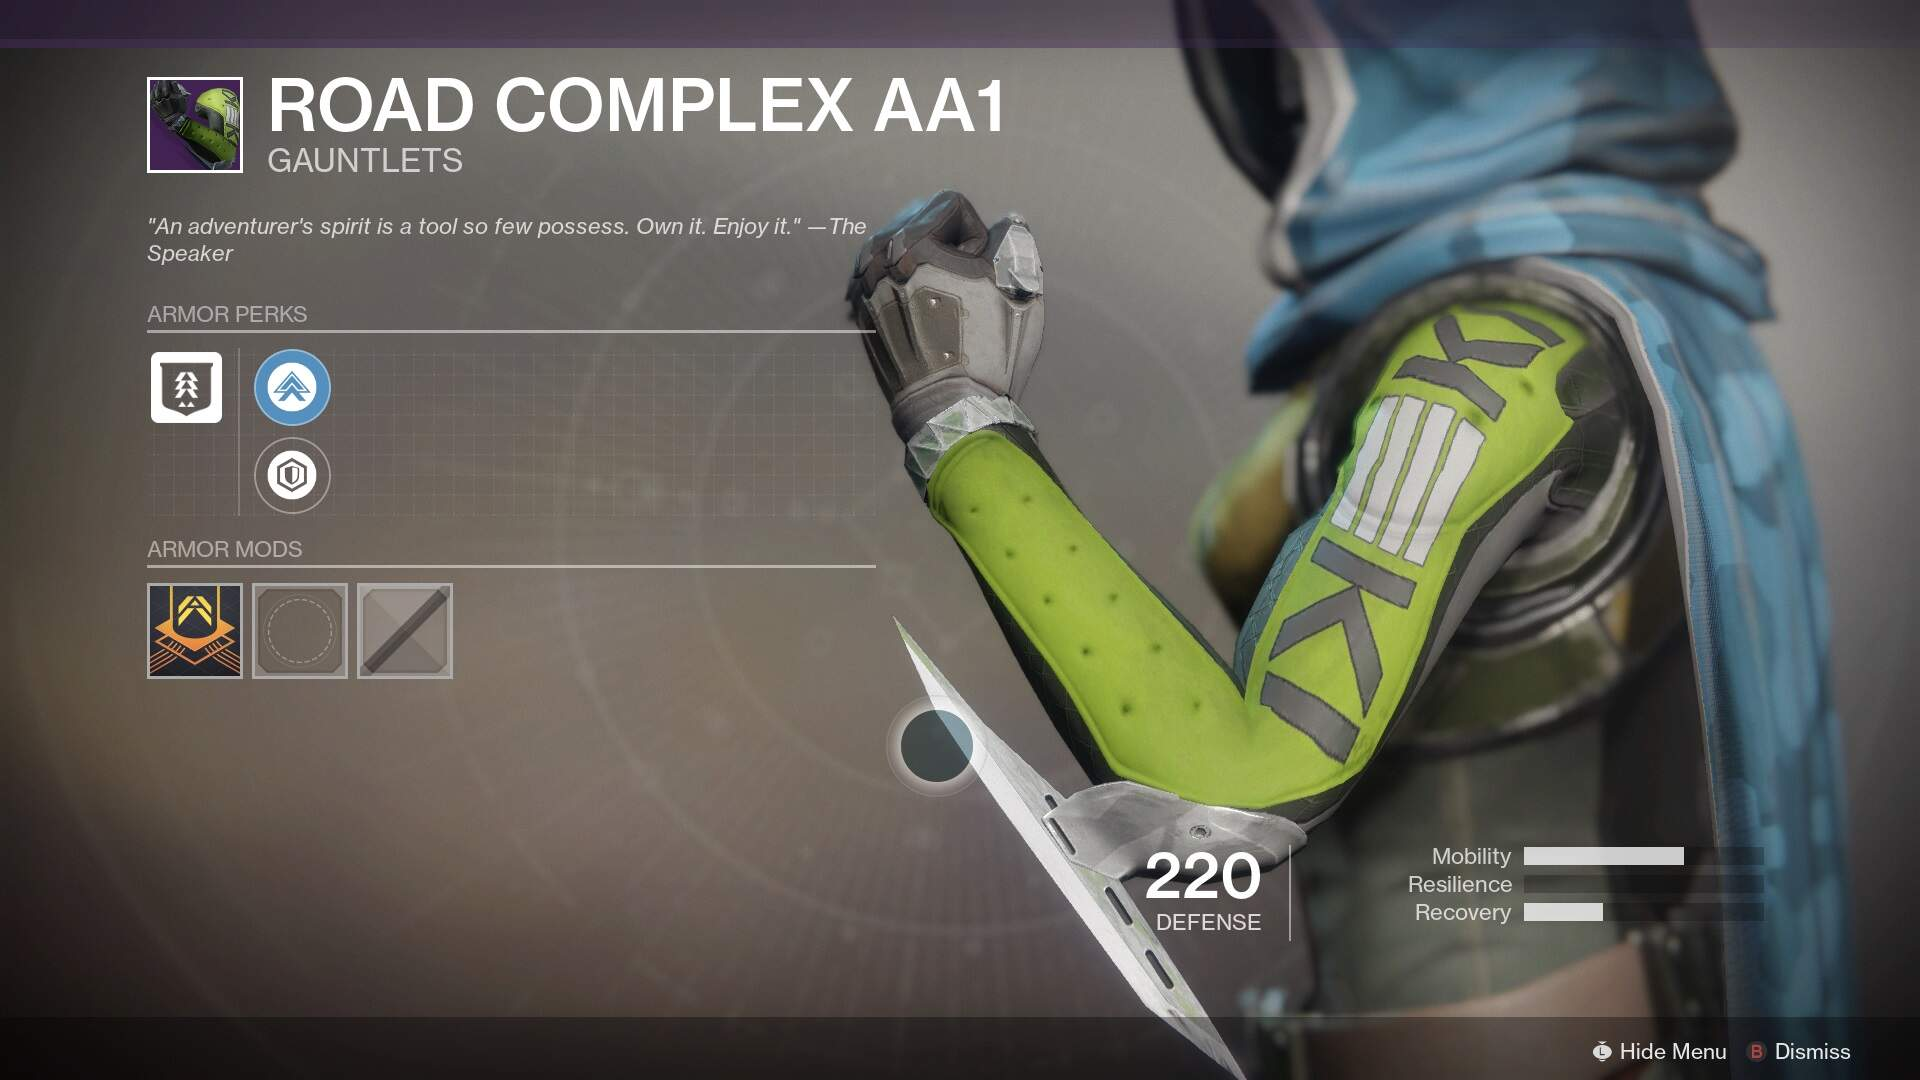 Destiny 2 Developer Bungie Didn't Know Kek Meme Was Co-Opted by White Supremacists